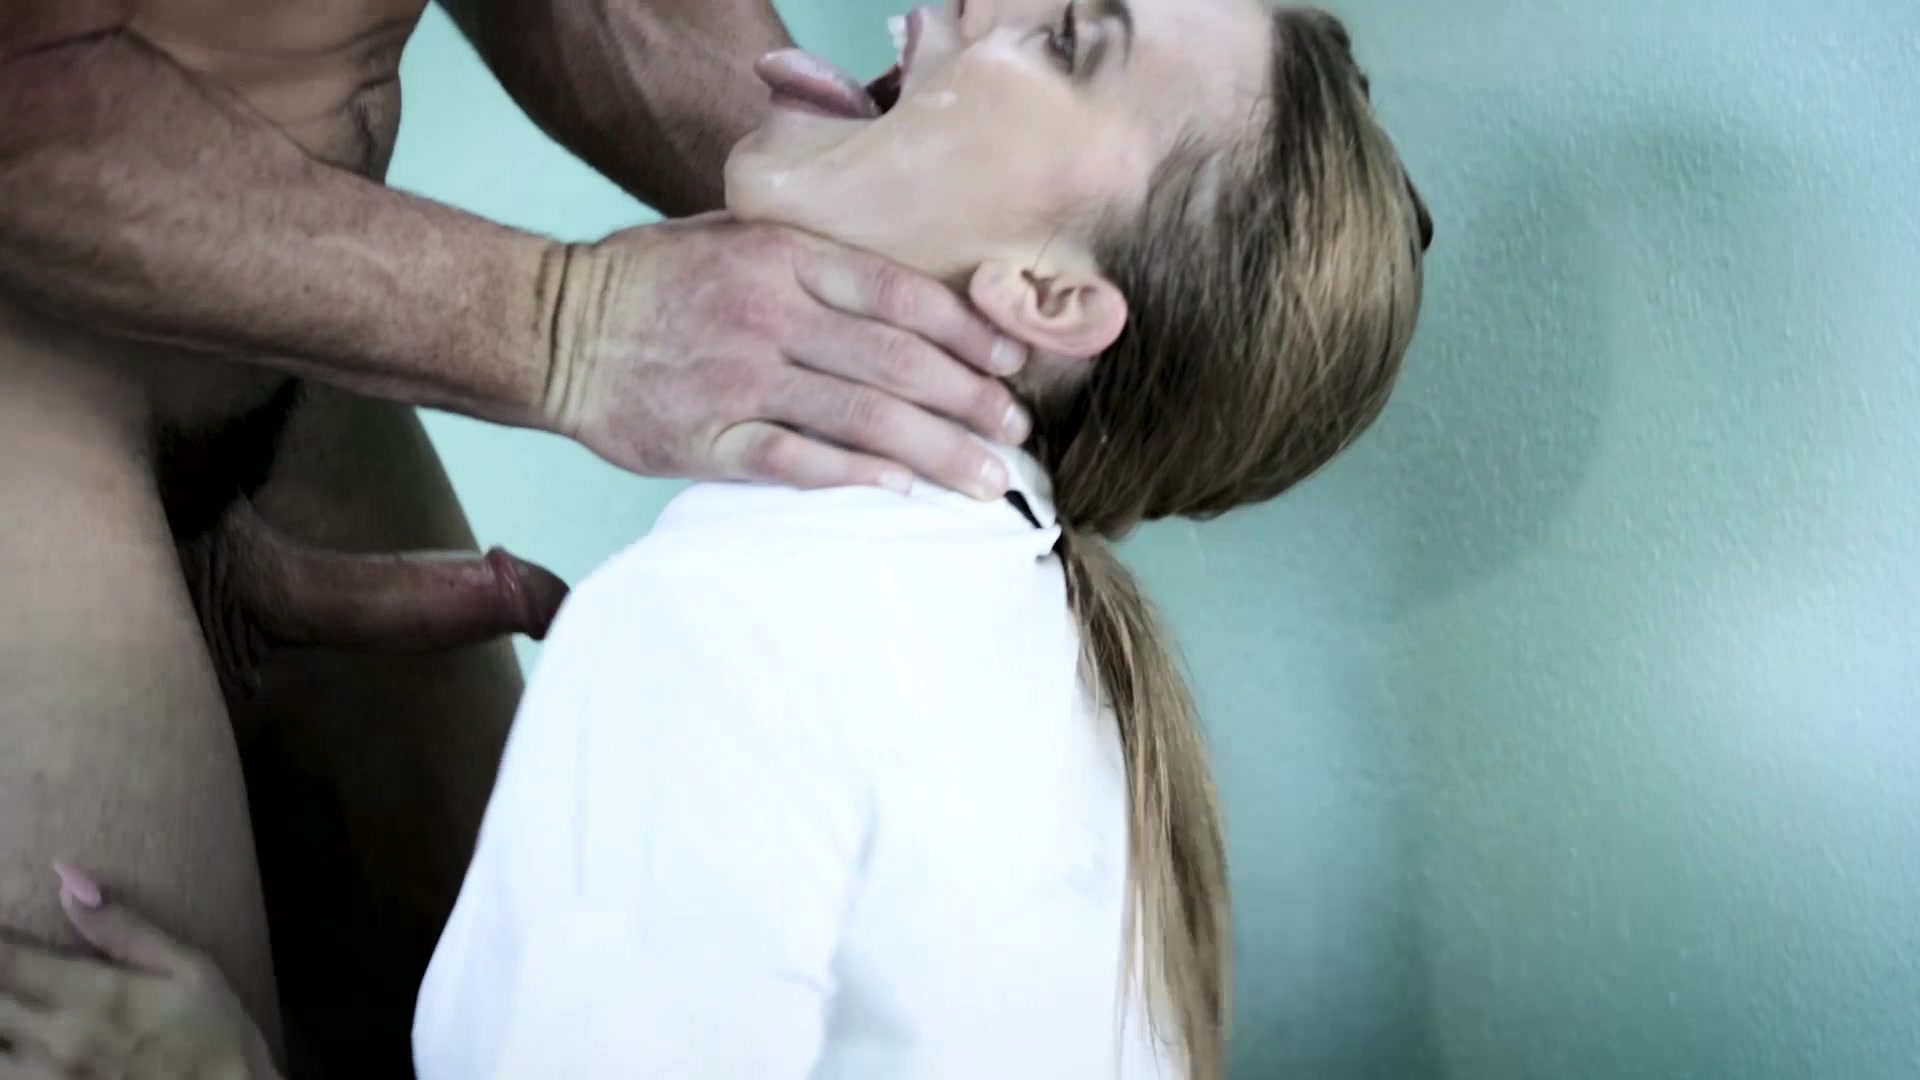 Scene with Jill Kassidy - image 8 out of 20